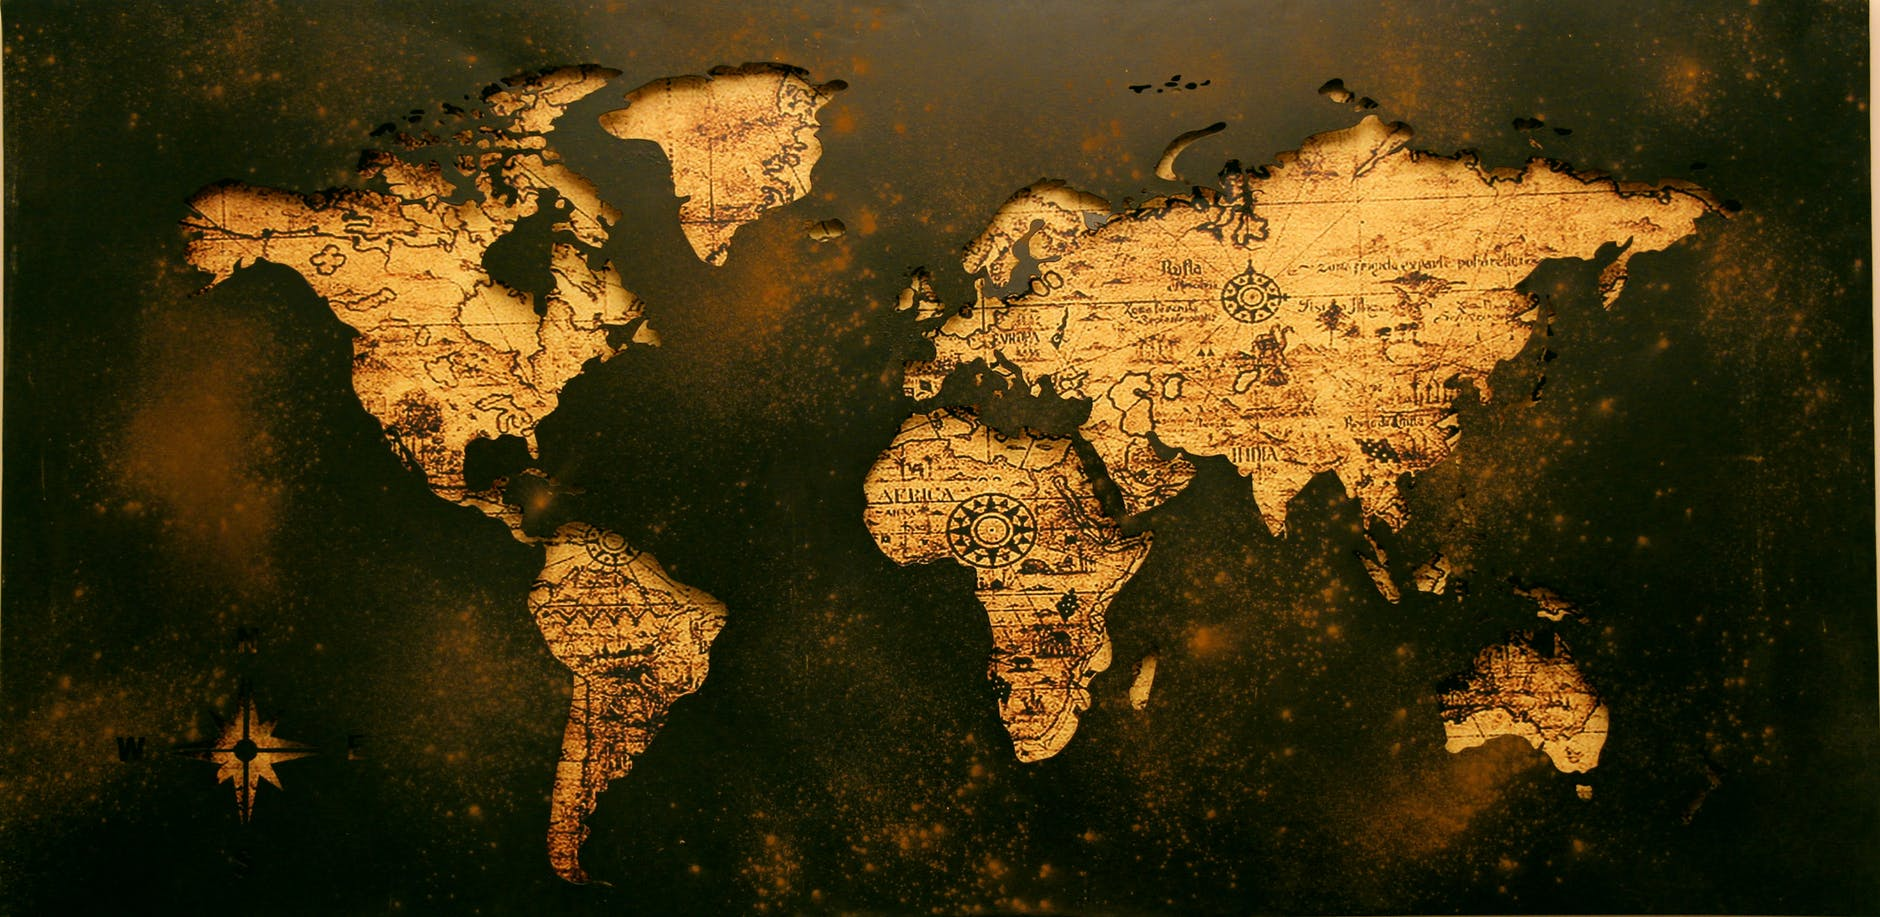 a map of the world in sepia tones - life coaching online wherever you are